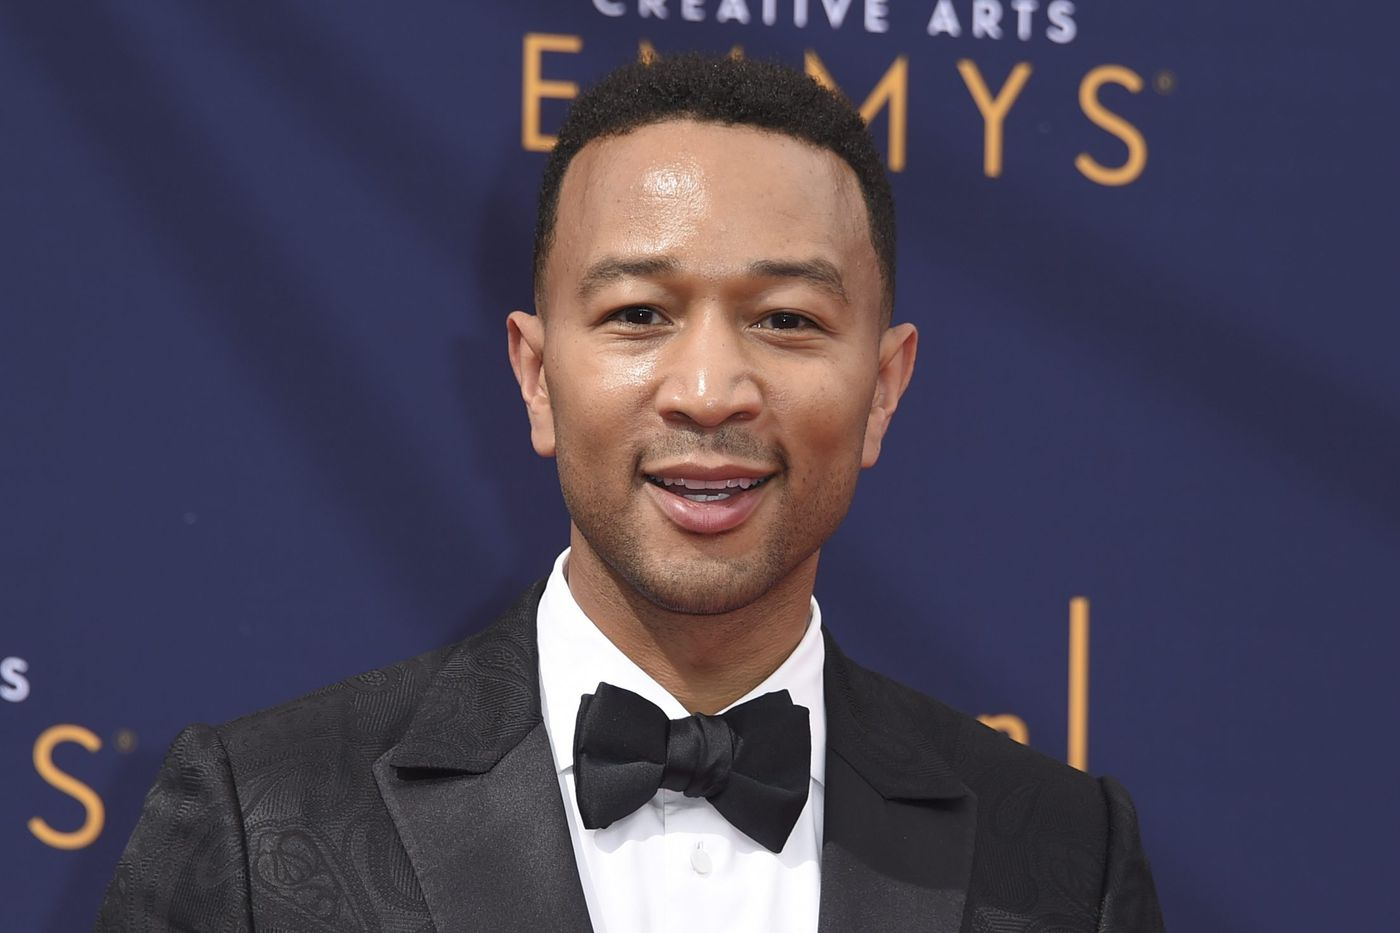 John Legend, Andrew Lloyd Webber become EGOT winners